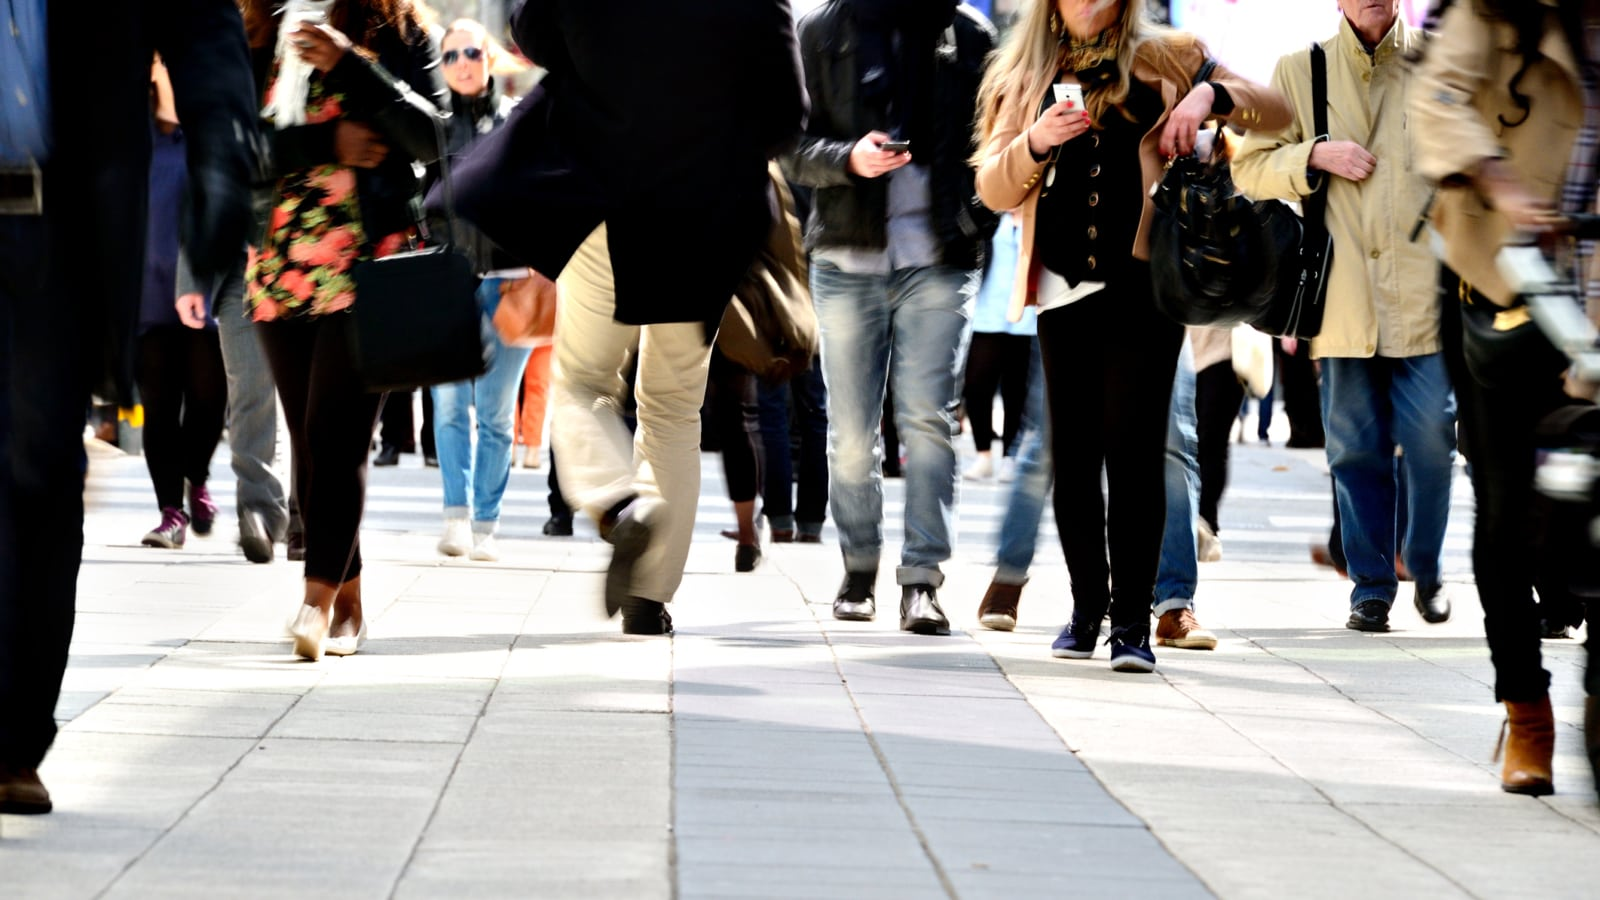 Crowded Streets Stock Photo